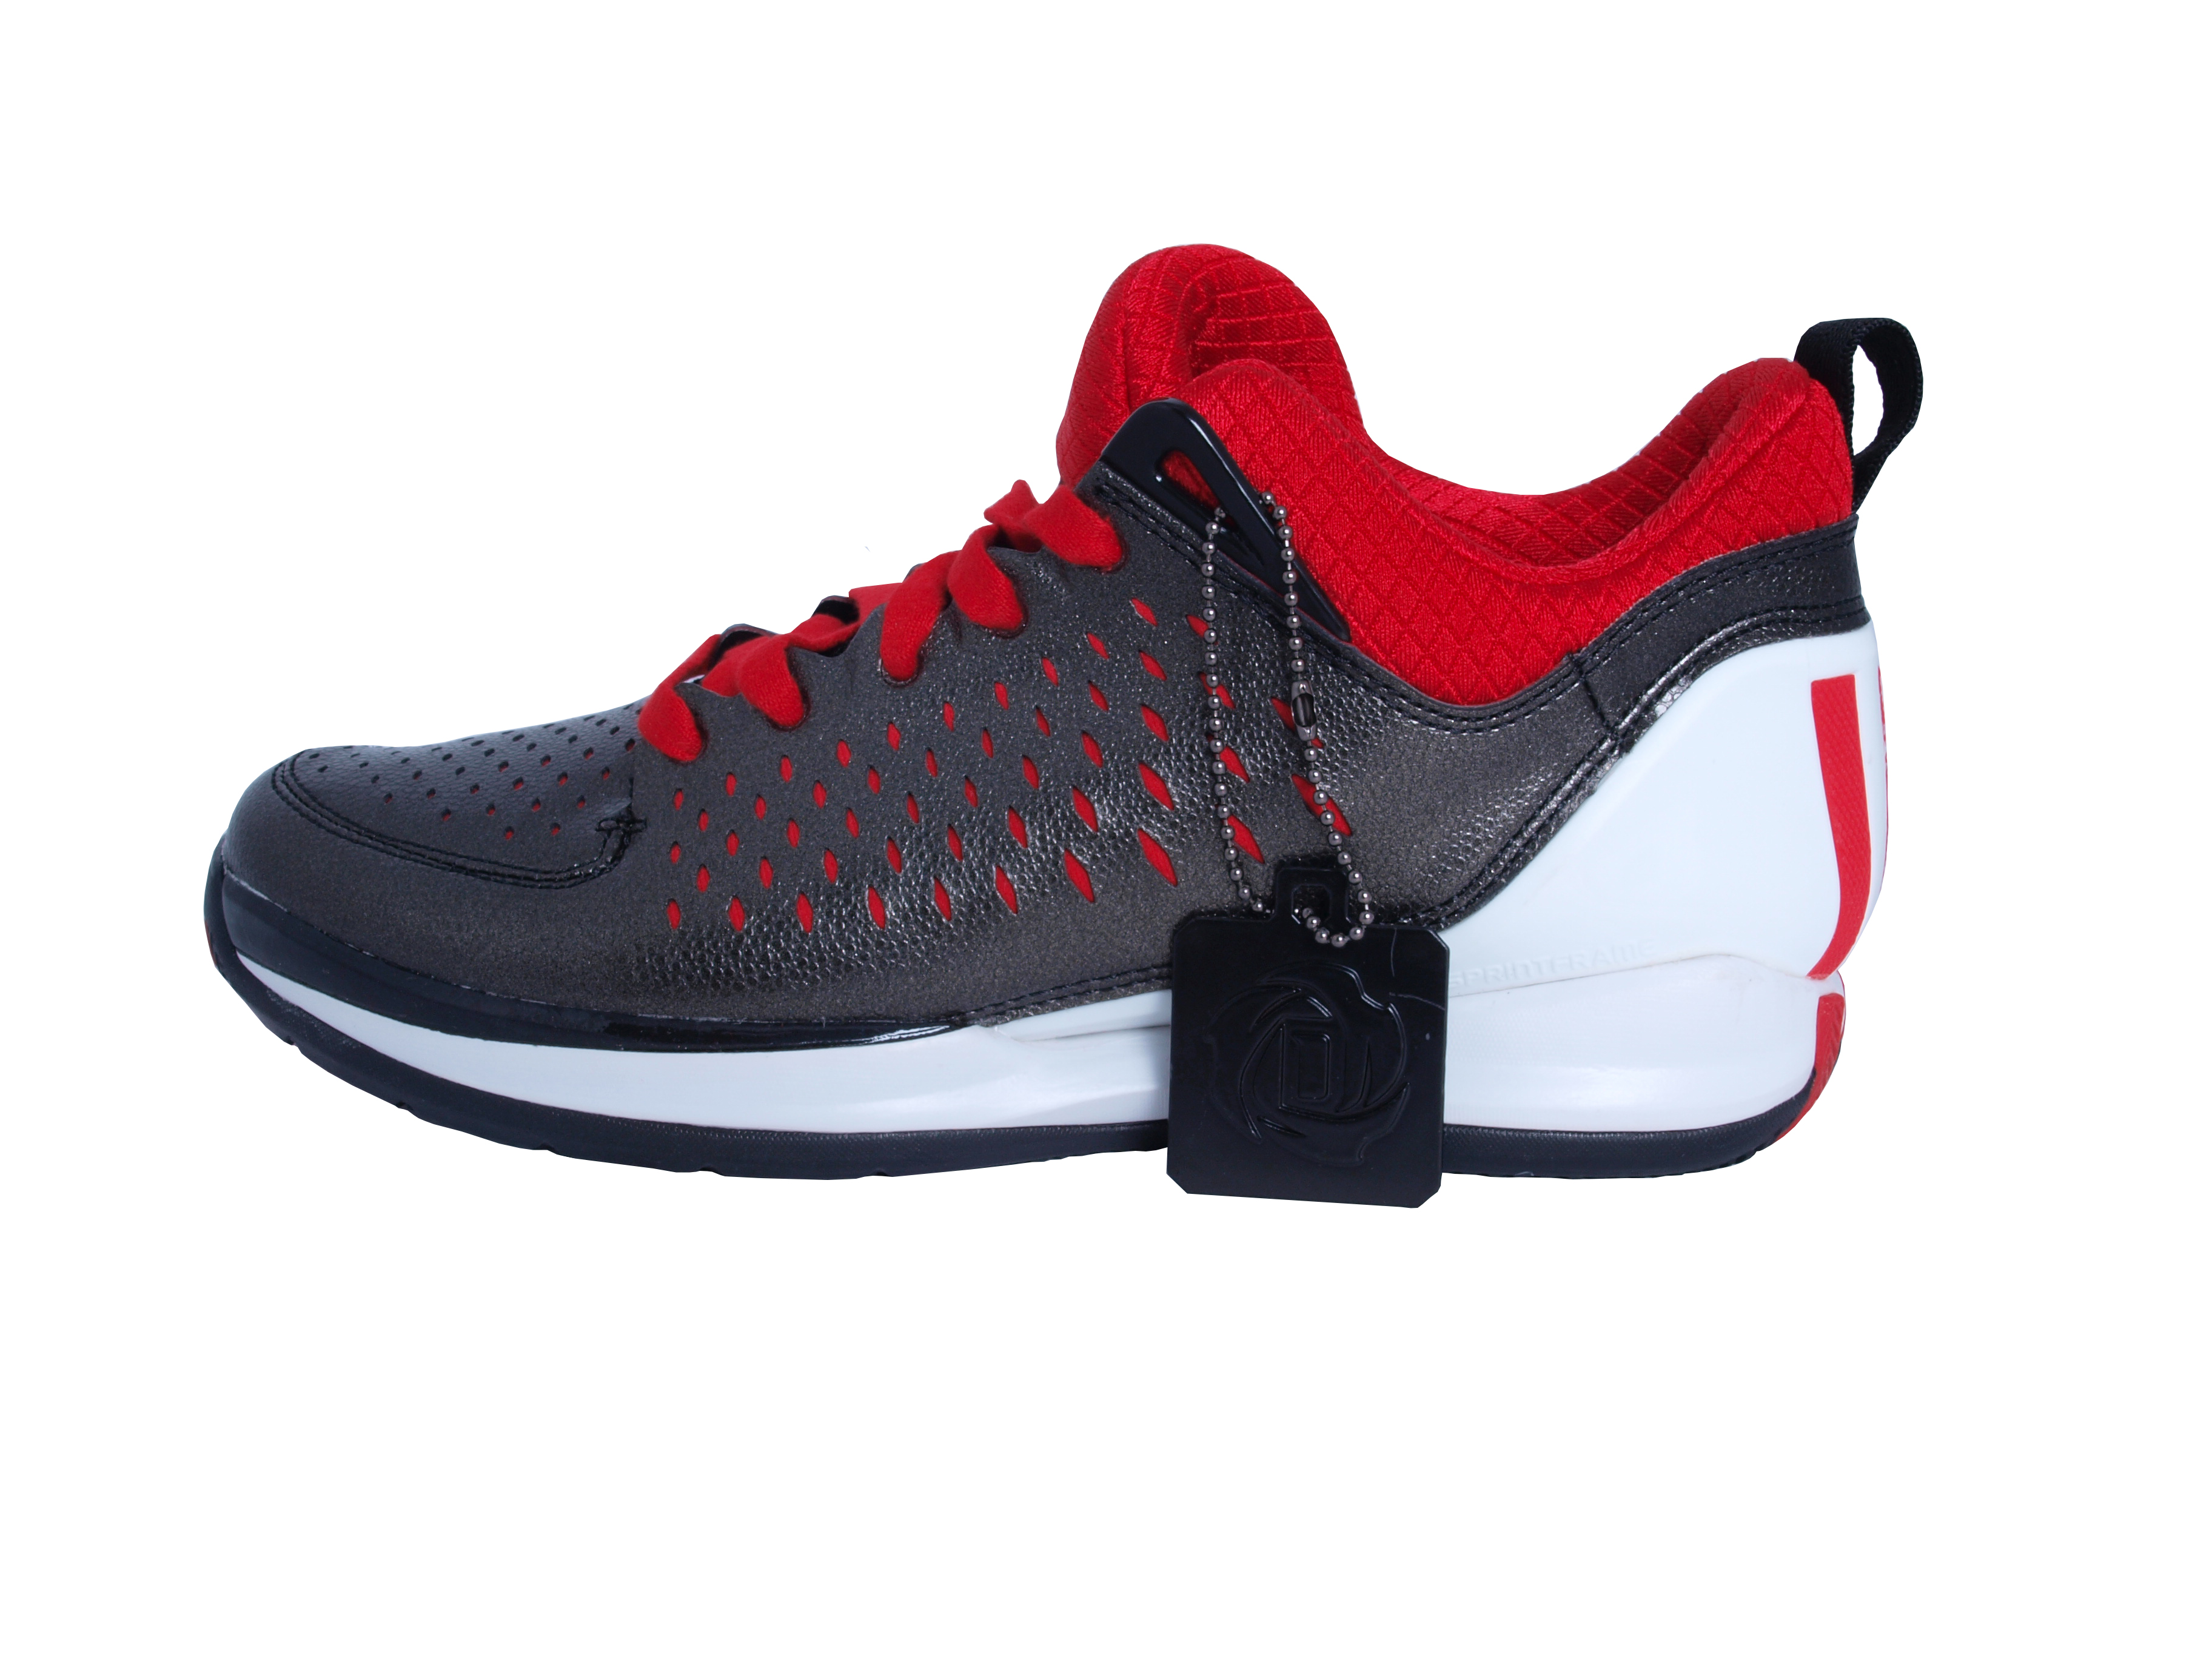 In October of , Derrick Rose's first signature shoe, the adiZero Rose would release. As one of the quickest guards in the NBA, adidas had to create a shoe with support without being bulky. Using the SPRINTSKIN monomesh, the shoes look to create a lighter and more breathable model.